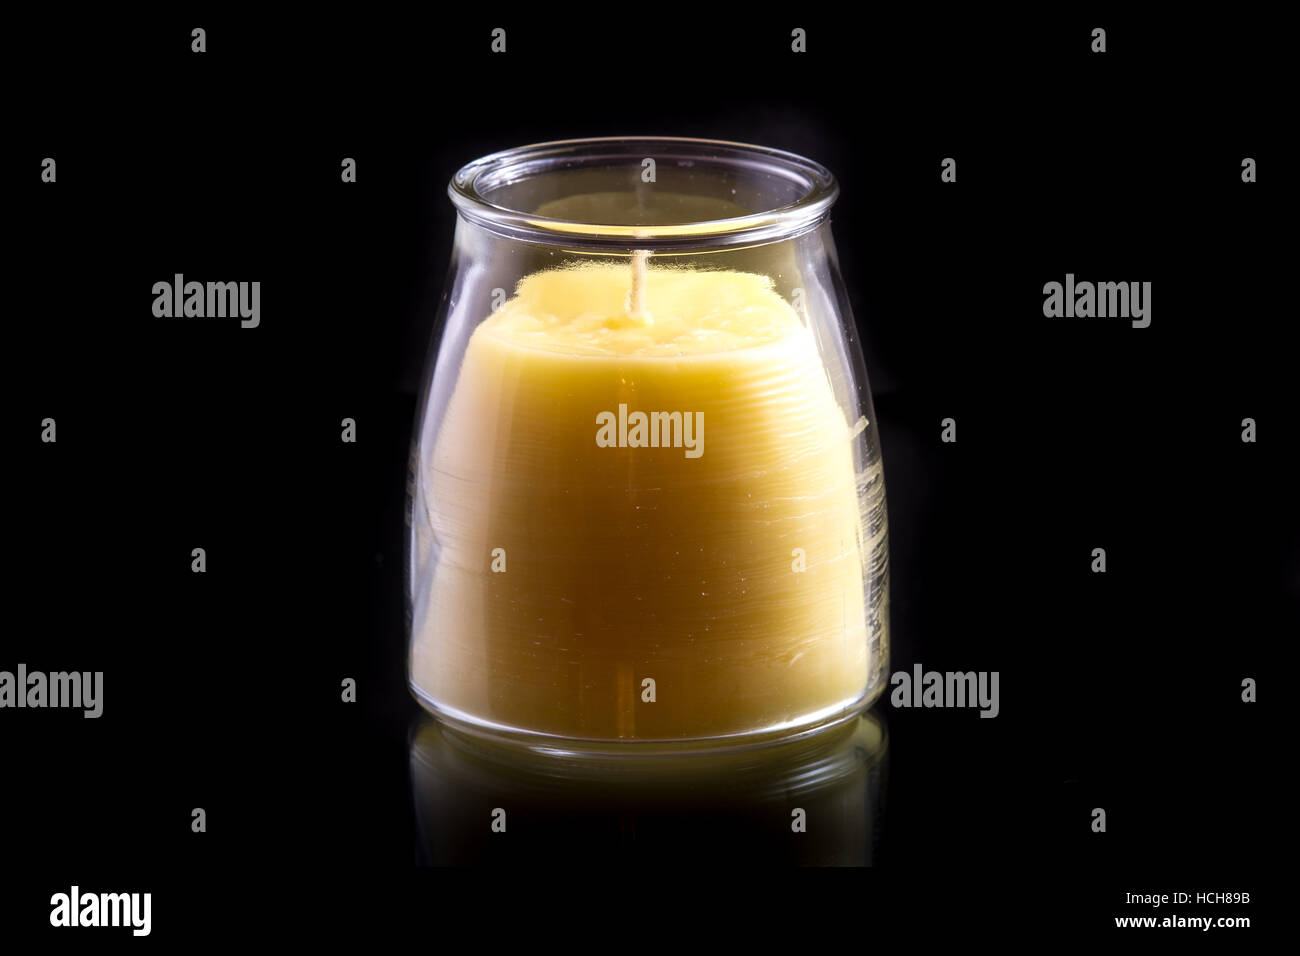 Beeswax candle (unlit) in a glass jar on a black background with a subtle reflection - Stock Image